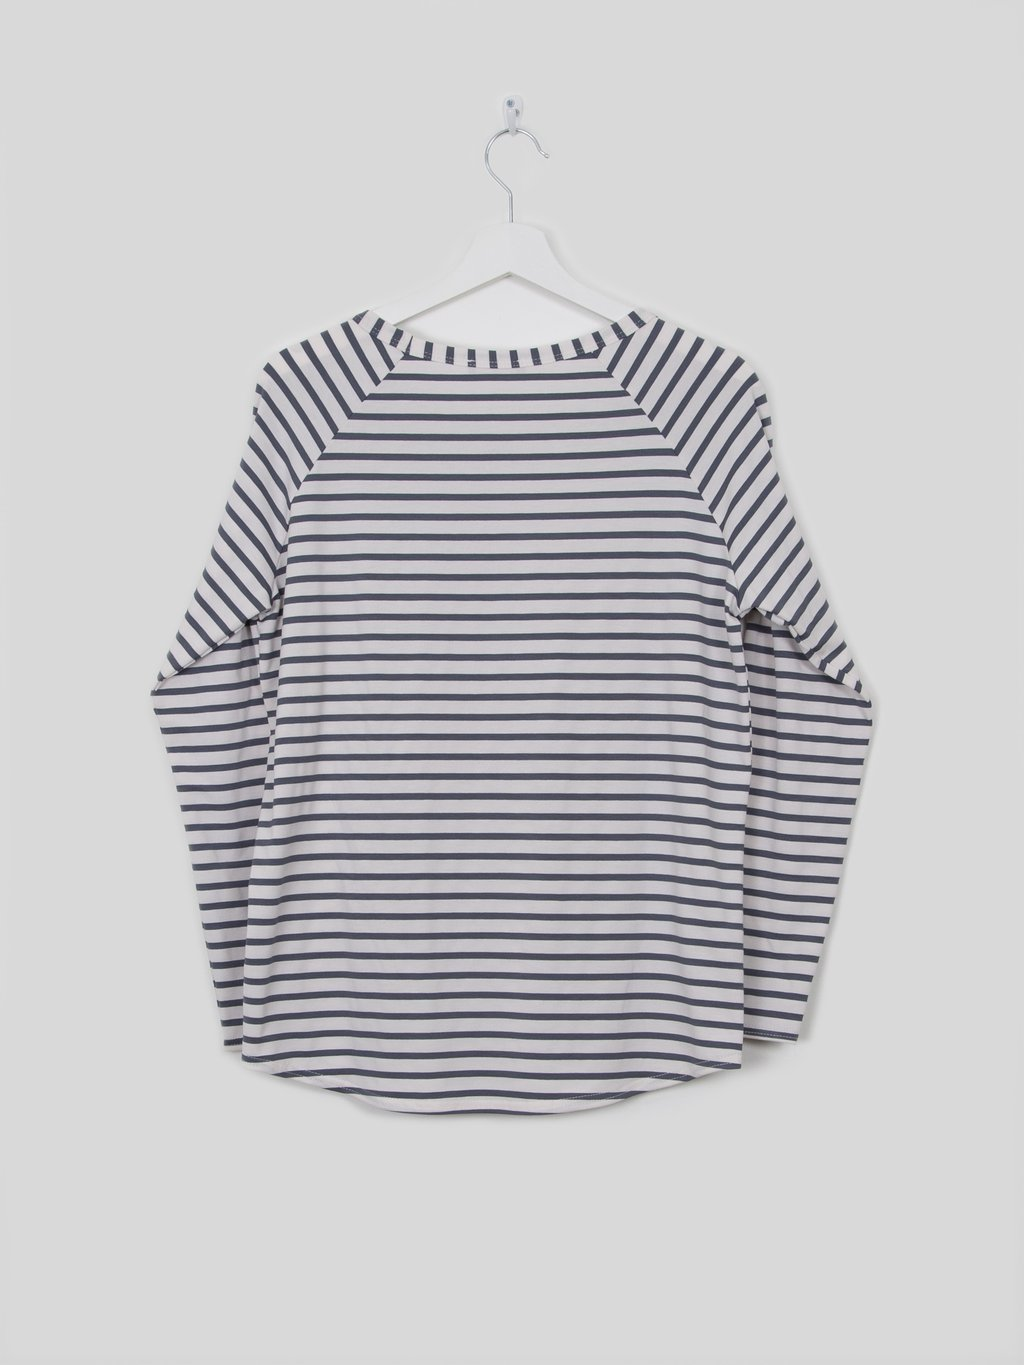 Tasha T-shirt Stripe in Charcoal